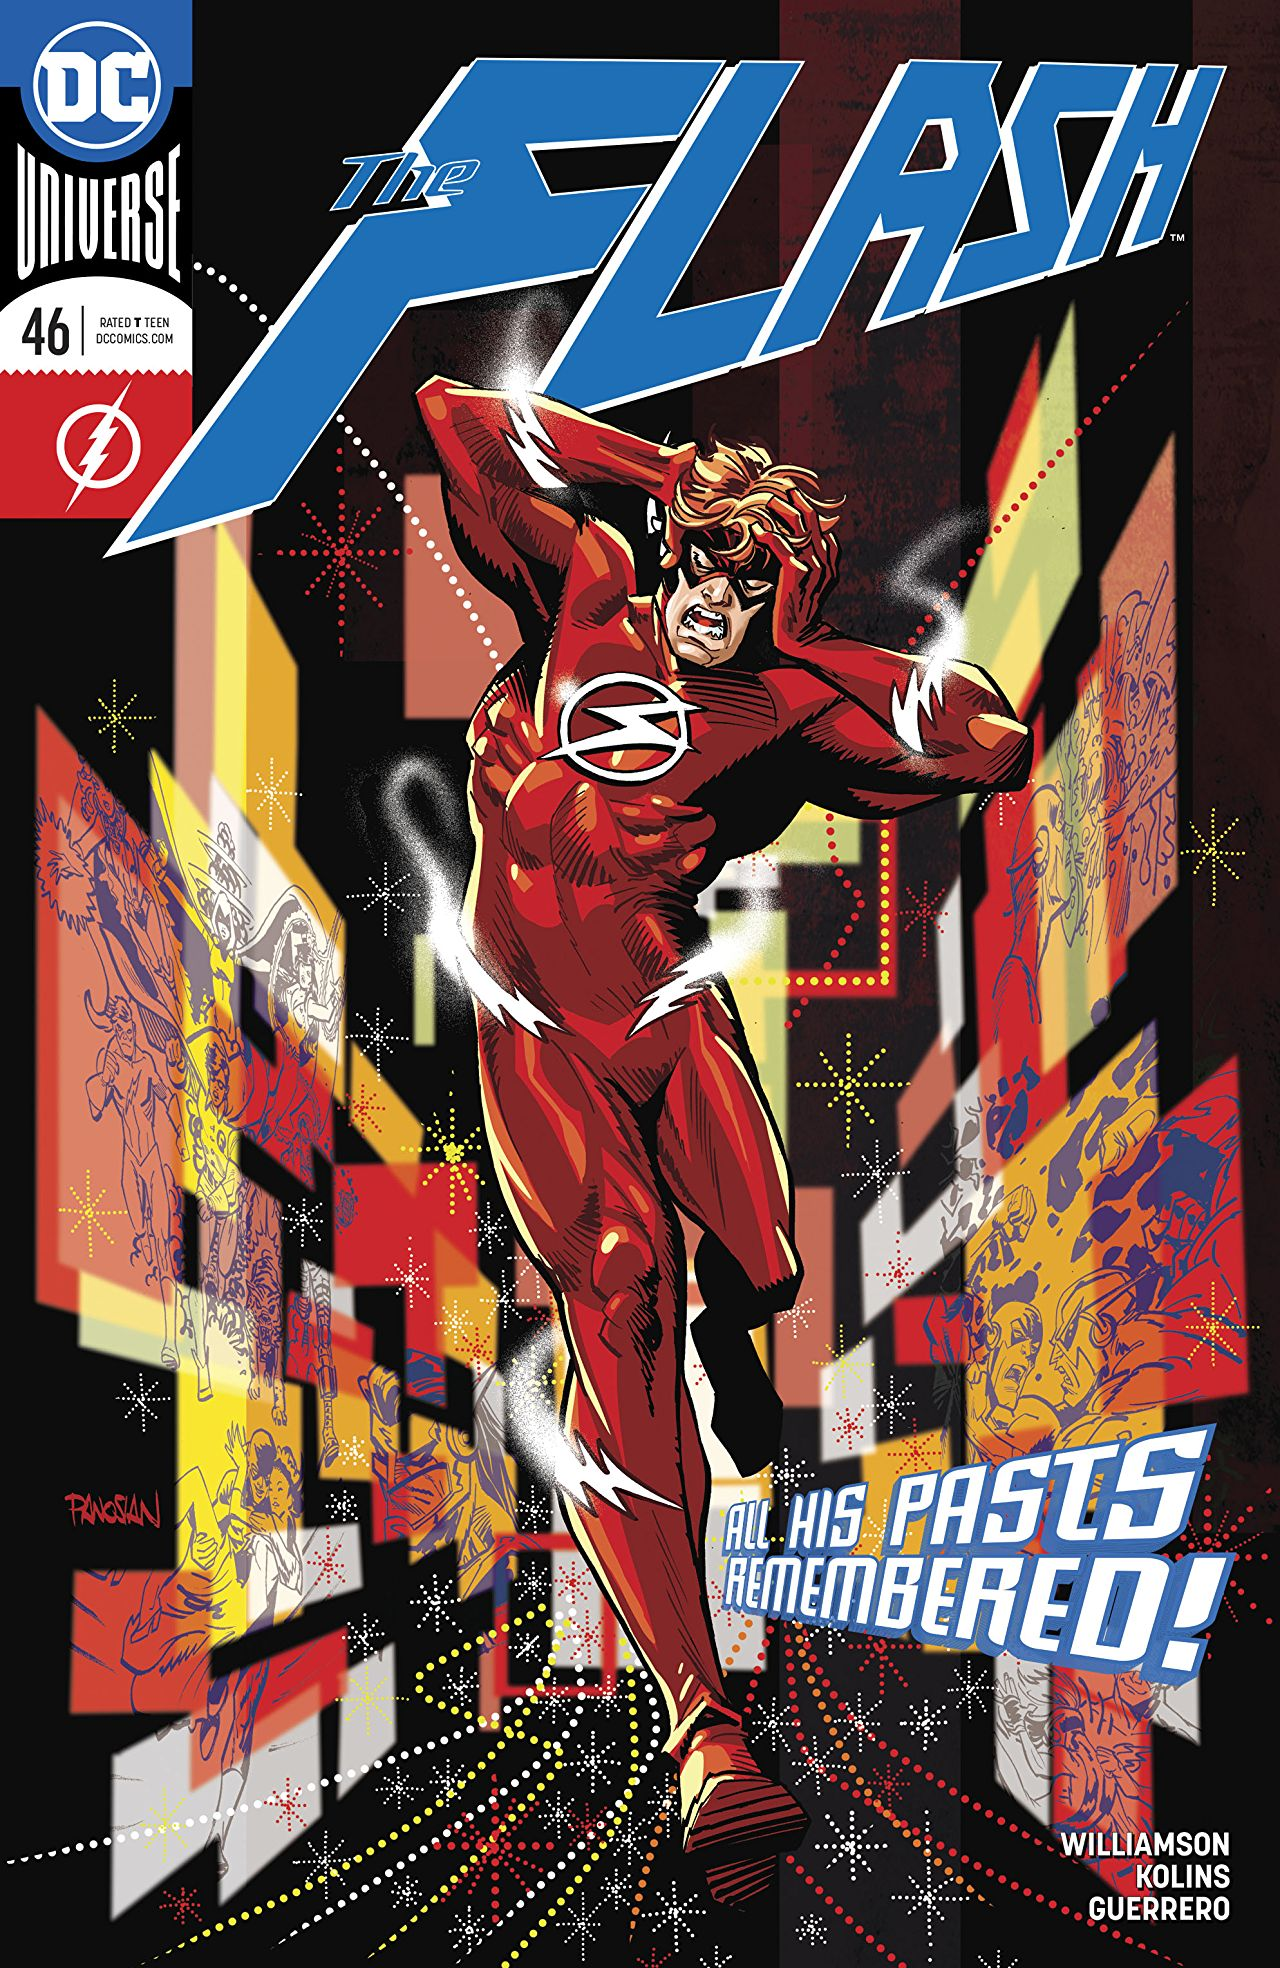 9ebfb32f860 The Flash Vol 5 46 | DC Database | FANDOM powered by Wikia